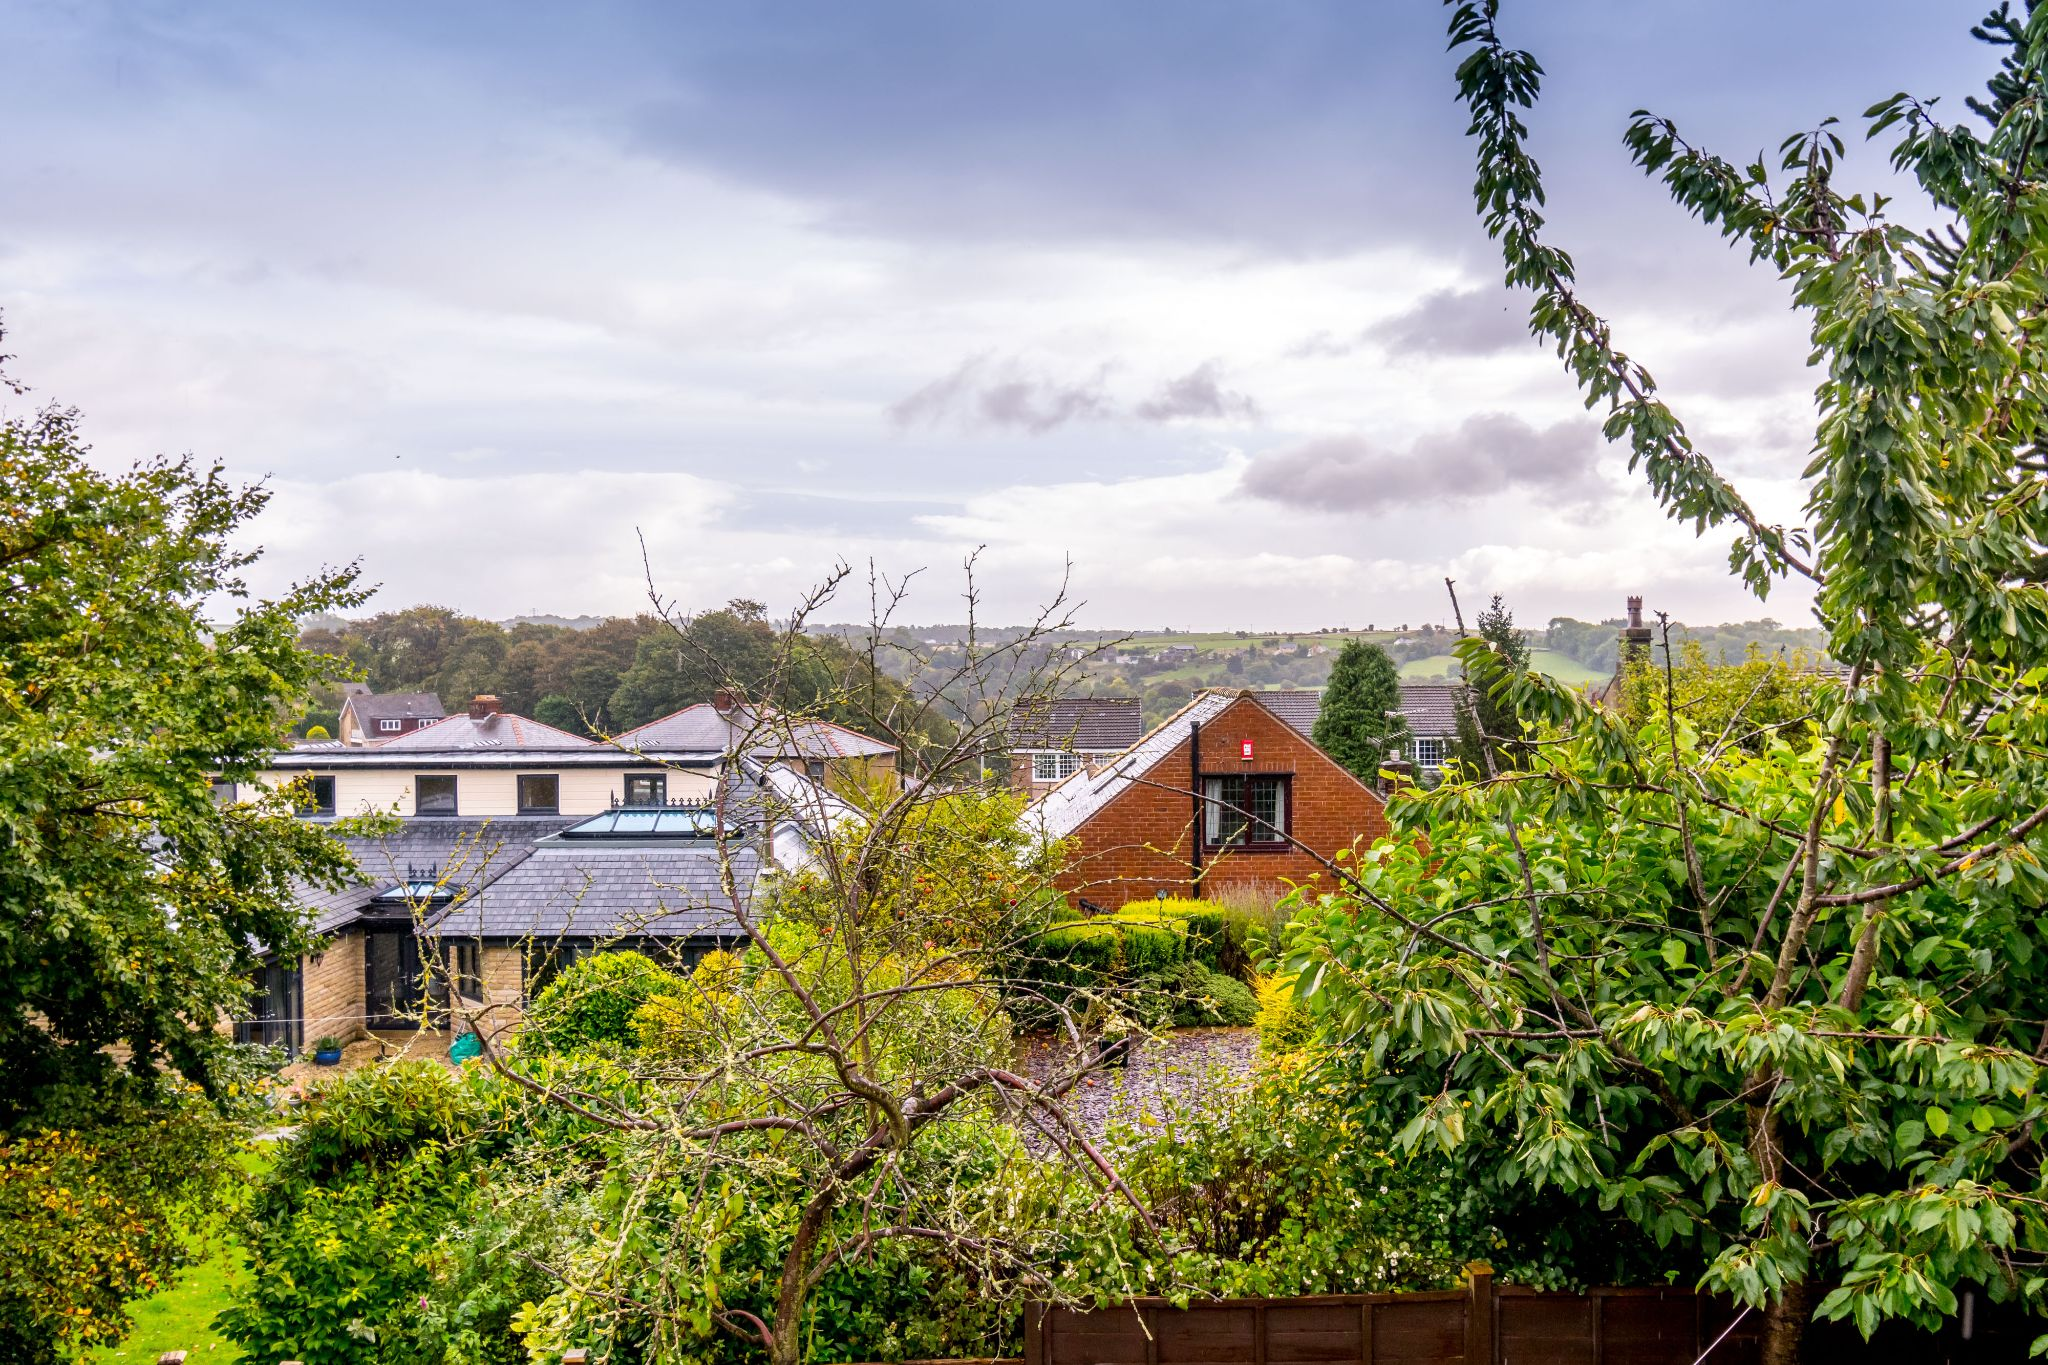 5 bedroom detached house For Sale in Brighouse - View from the rear garden